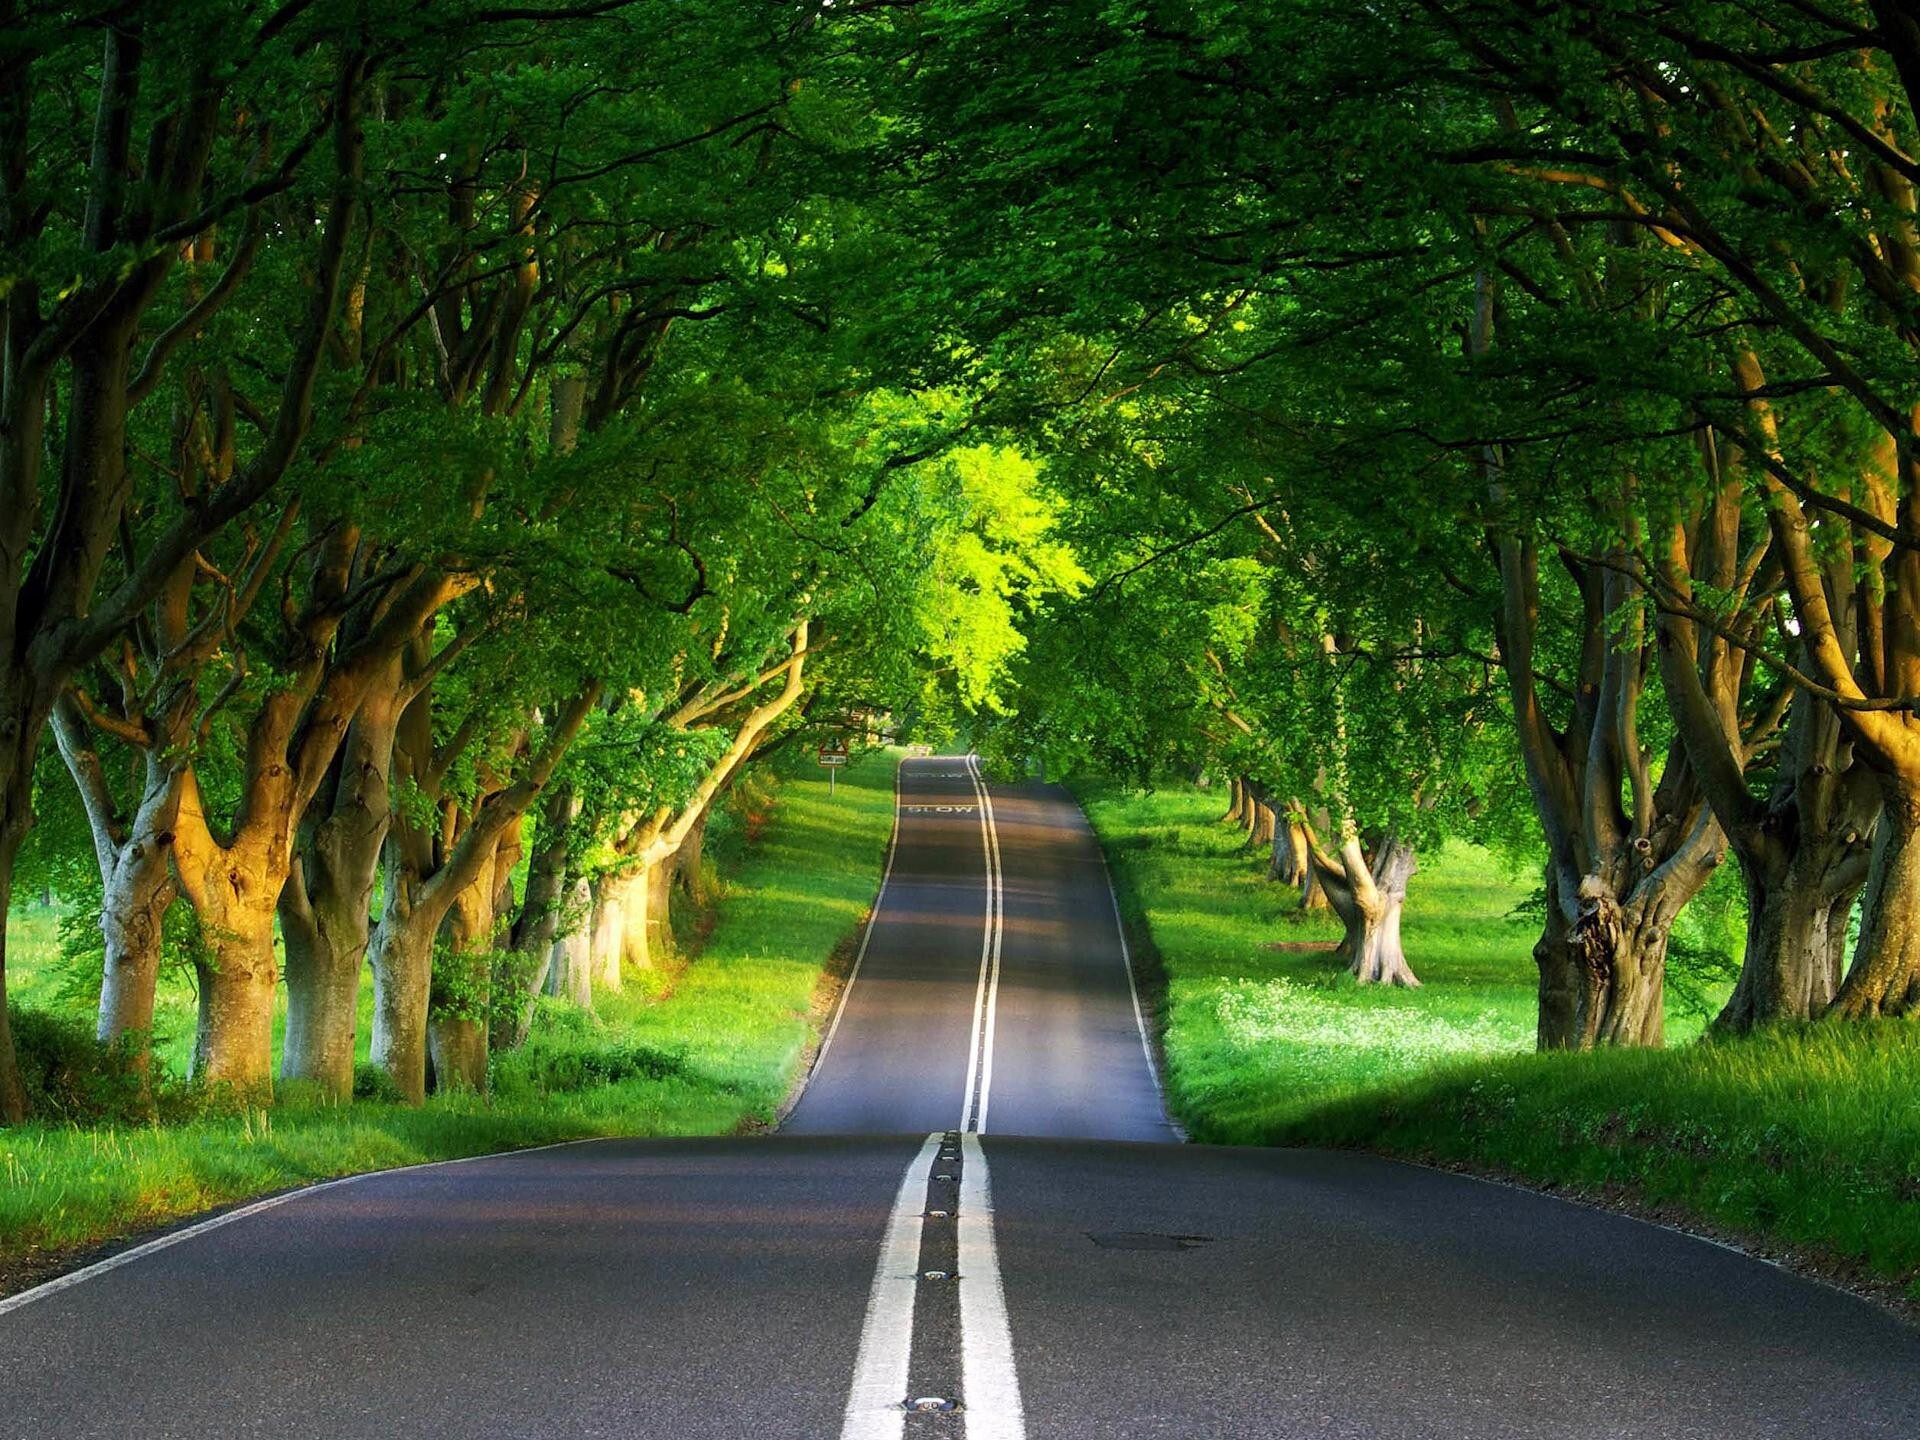 road between nature view | hd wallpapers